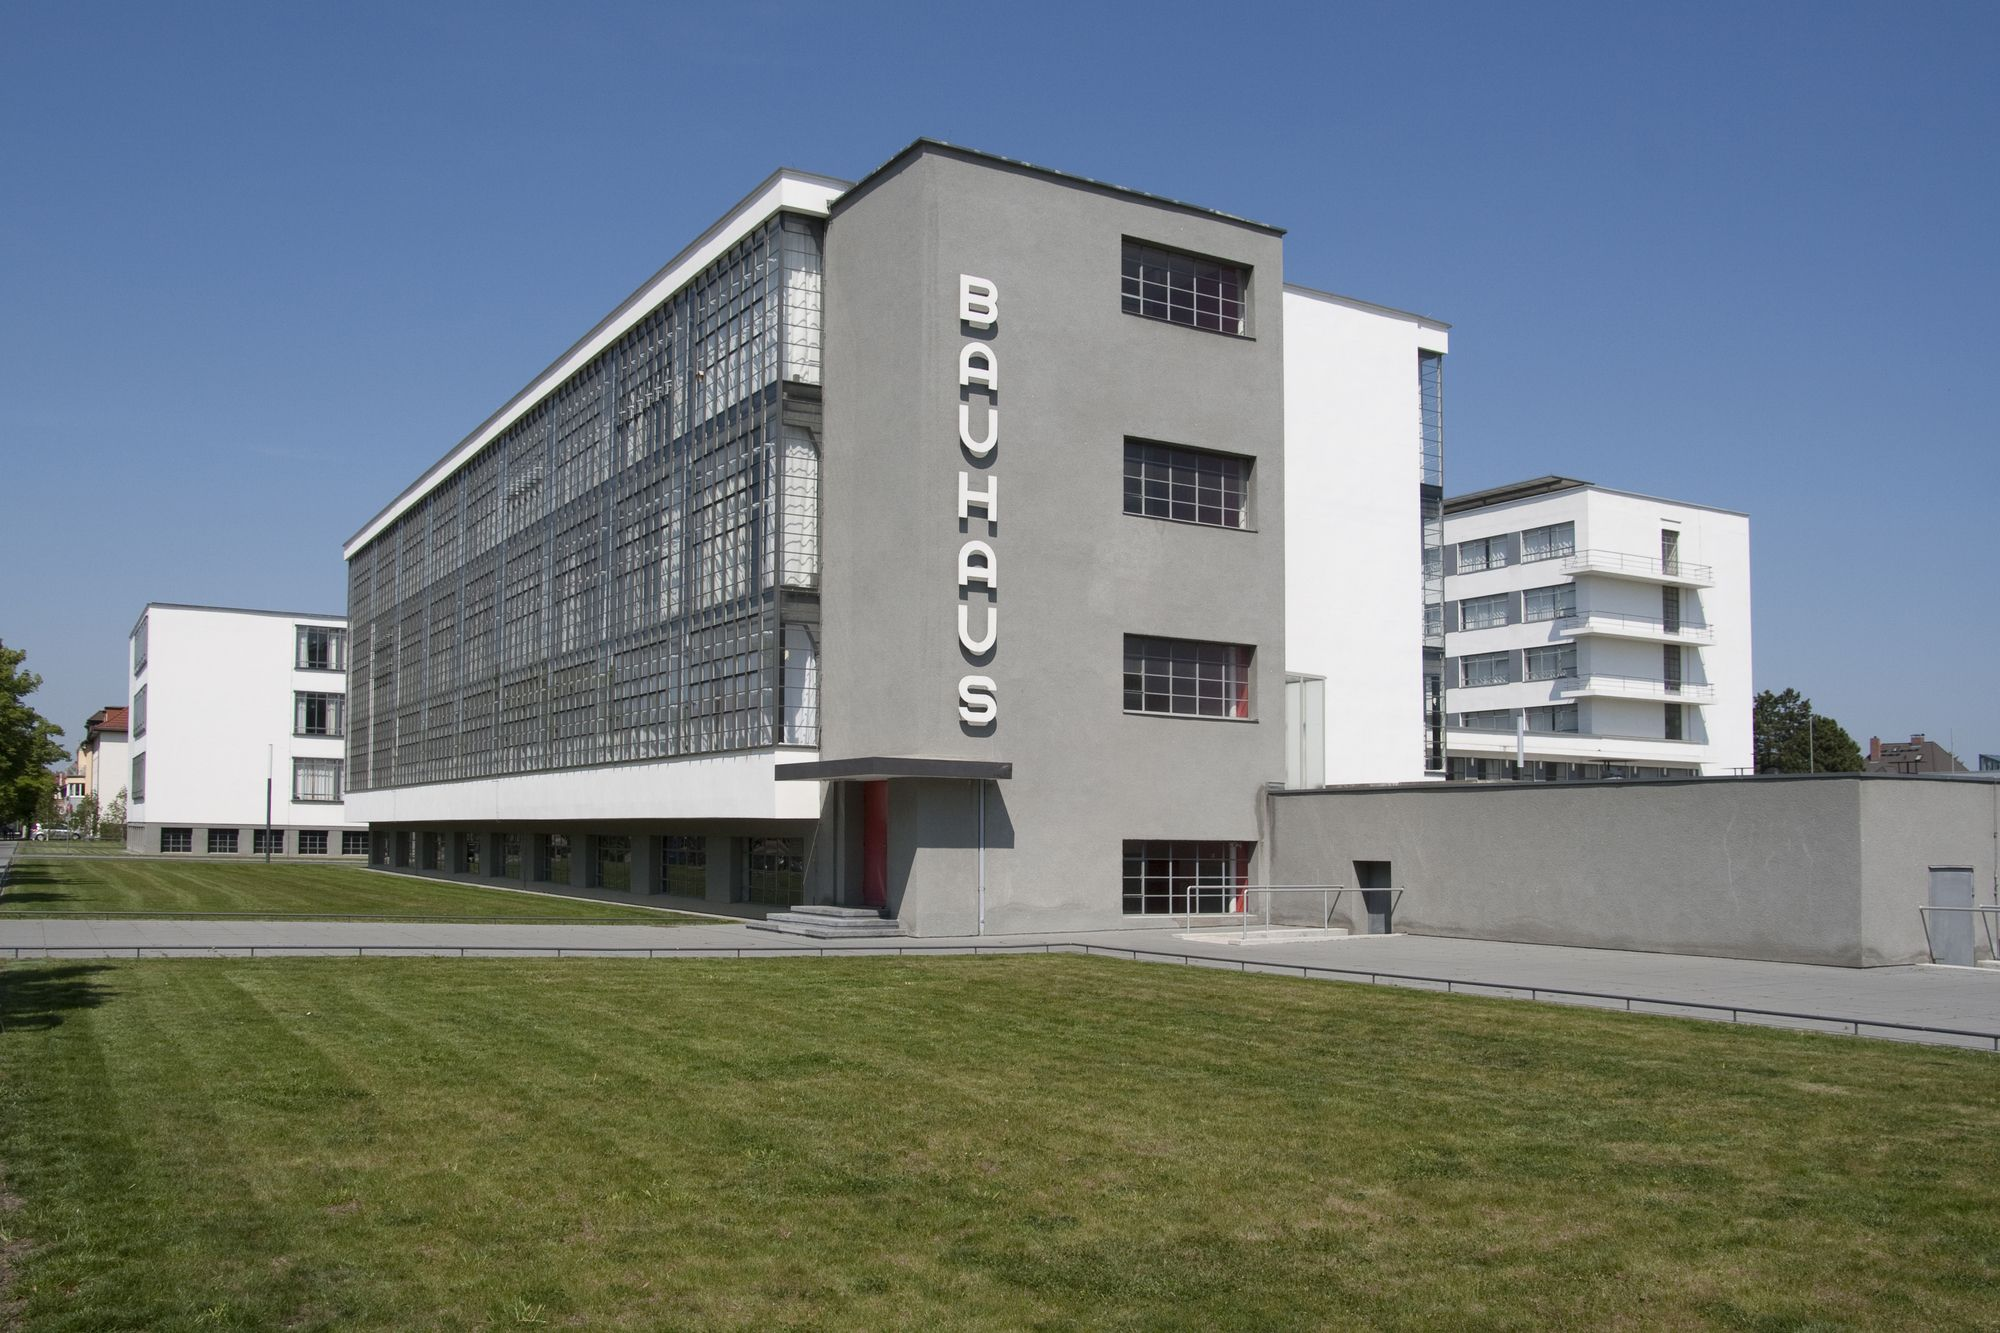 Gallery Of Bauhaus Among 12 Modern Buildings To Receive